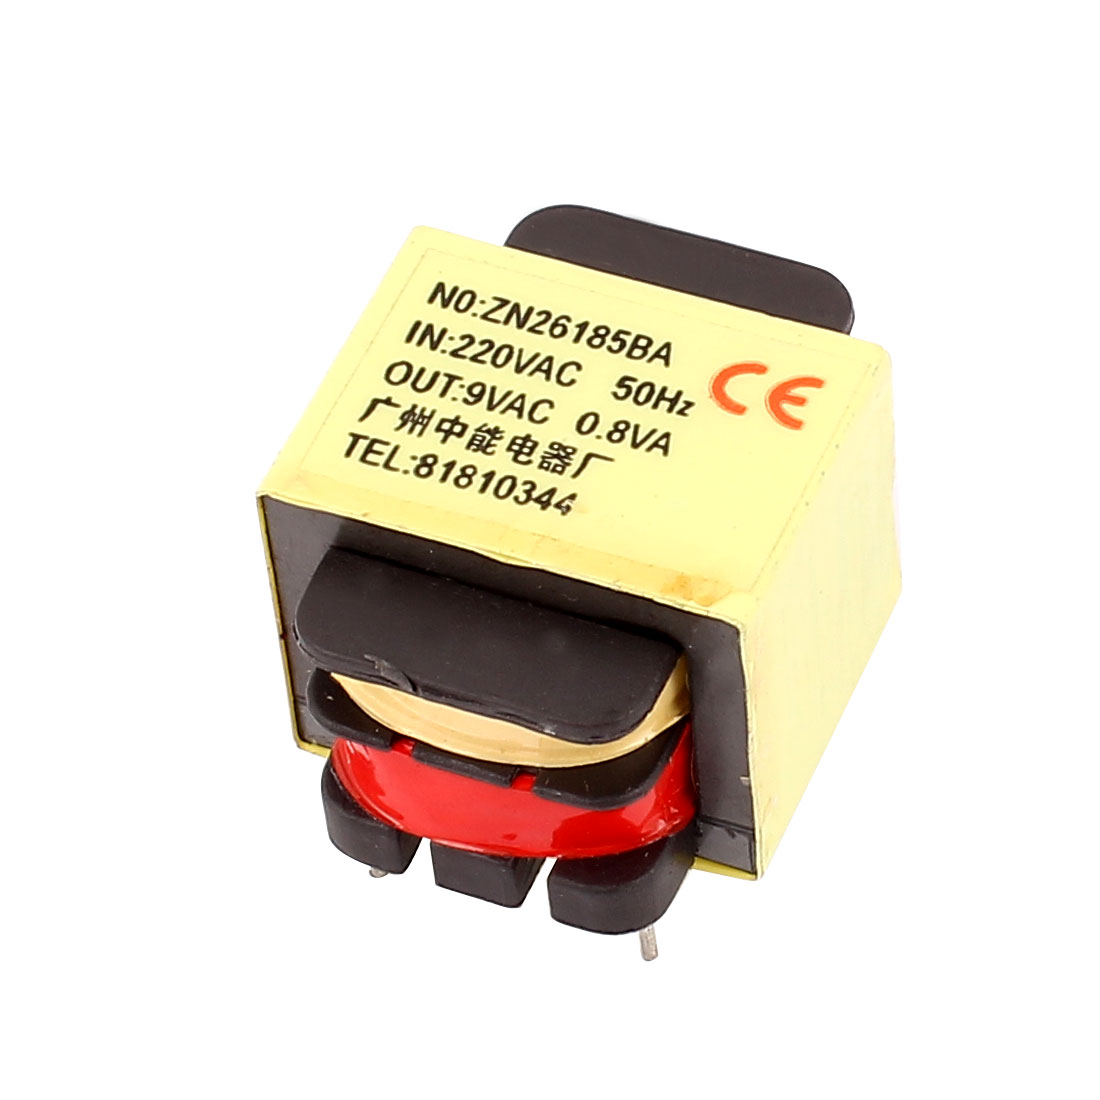 220V Input 9V 0.8W Output Yellow Red Ferrite Core Power Transformer w 5 Terminals